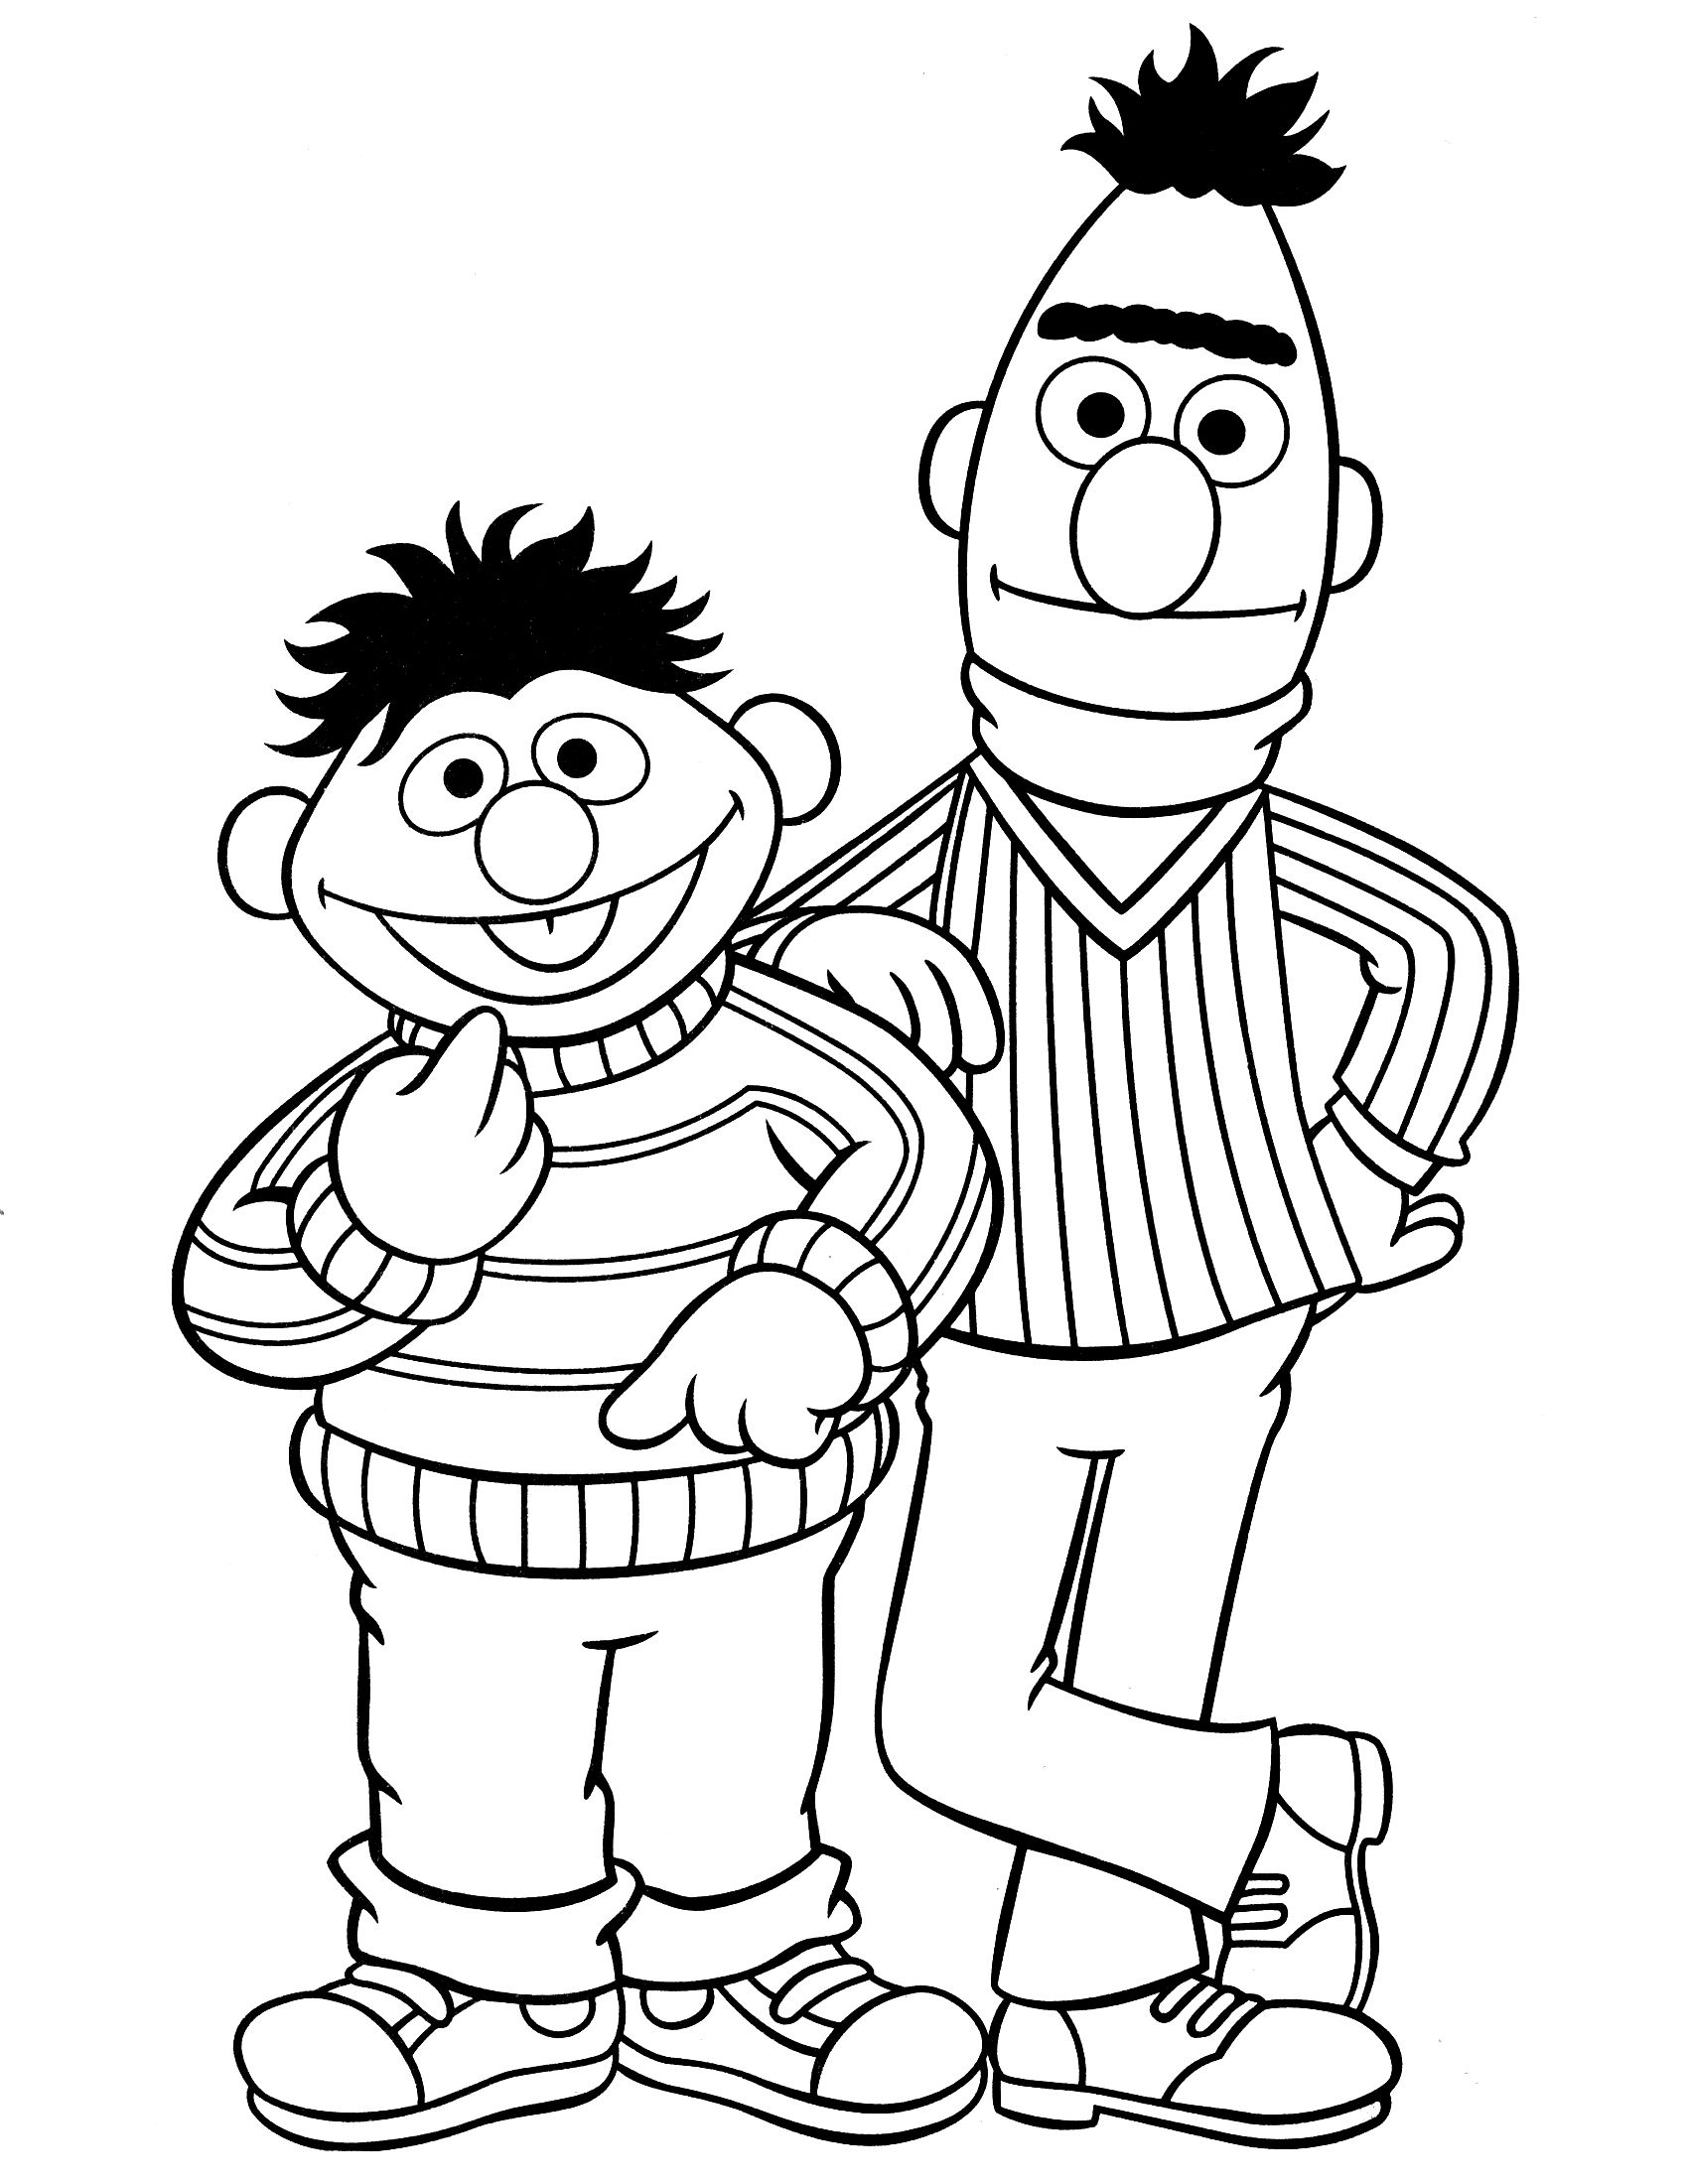 Here We Provide Some Black And White Sesame Street Coloring Pages